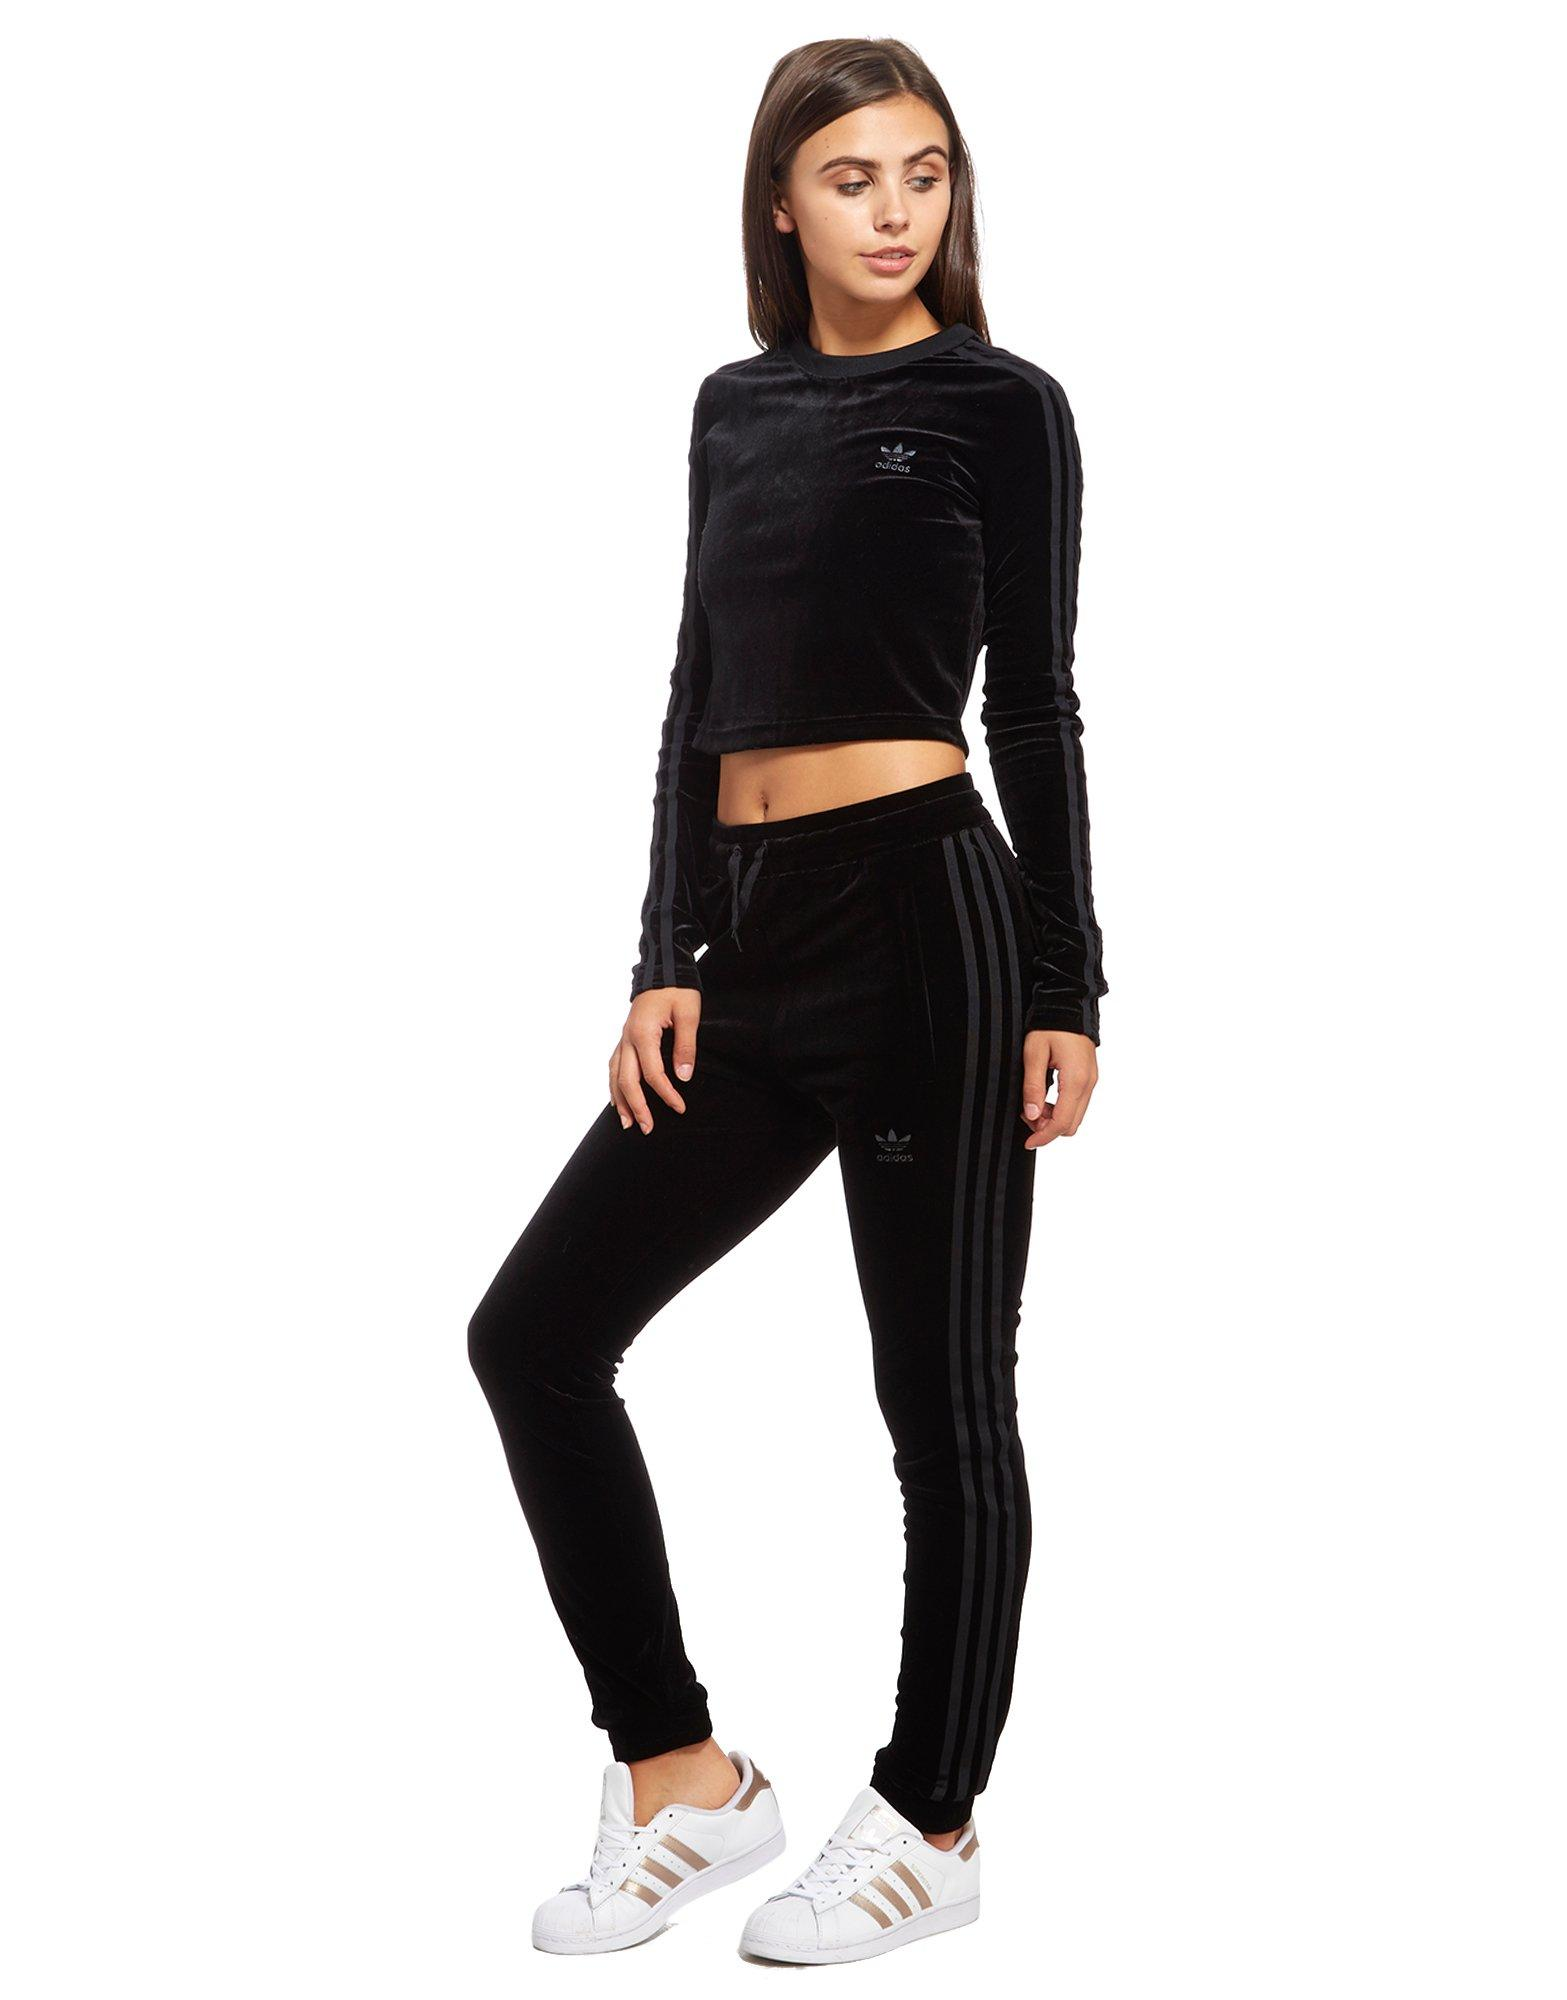 adidas crop top long sleeve